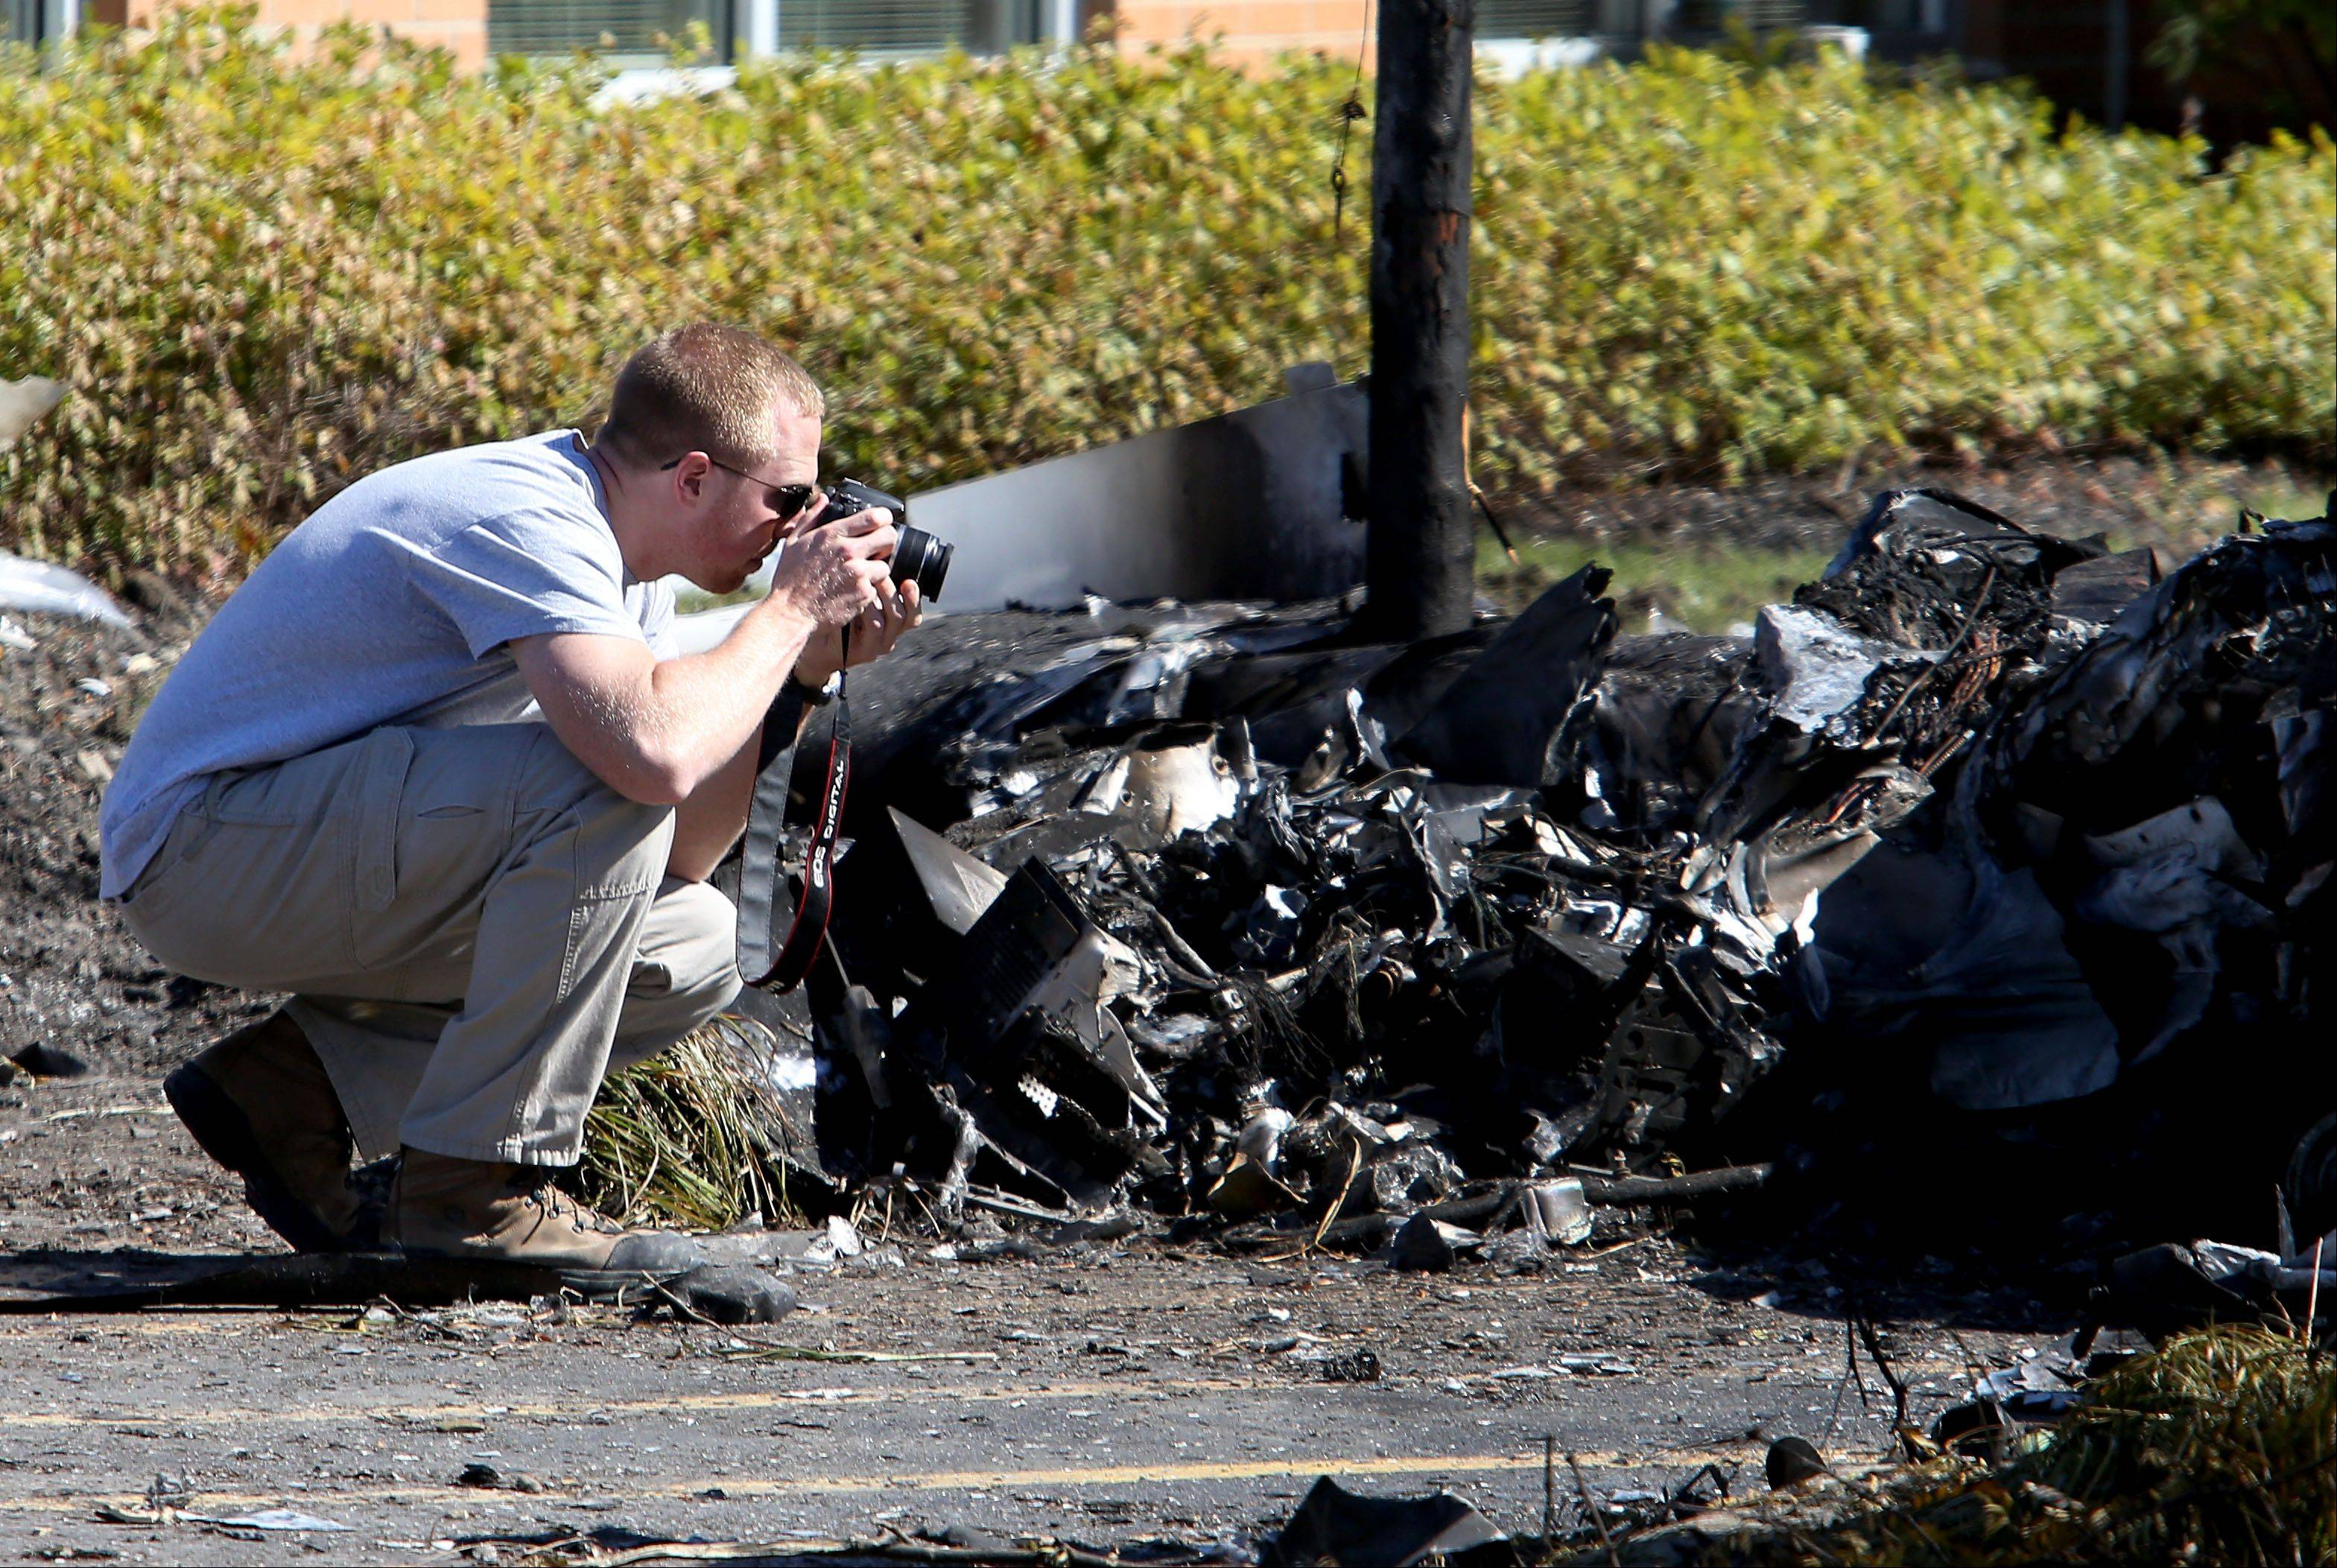 An investigator from the NTSB takes photographs of wreckage the day after a Sept. 25 plane crash in Bolingbrook.